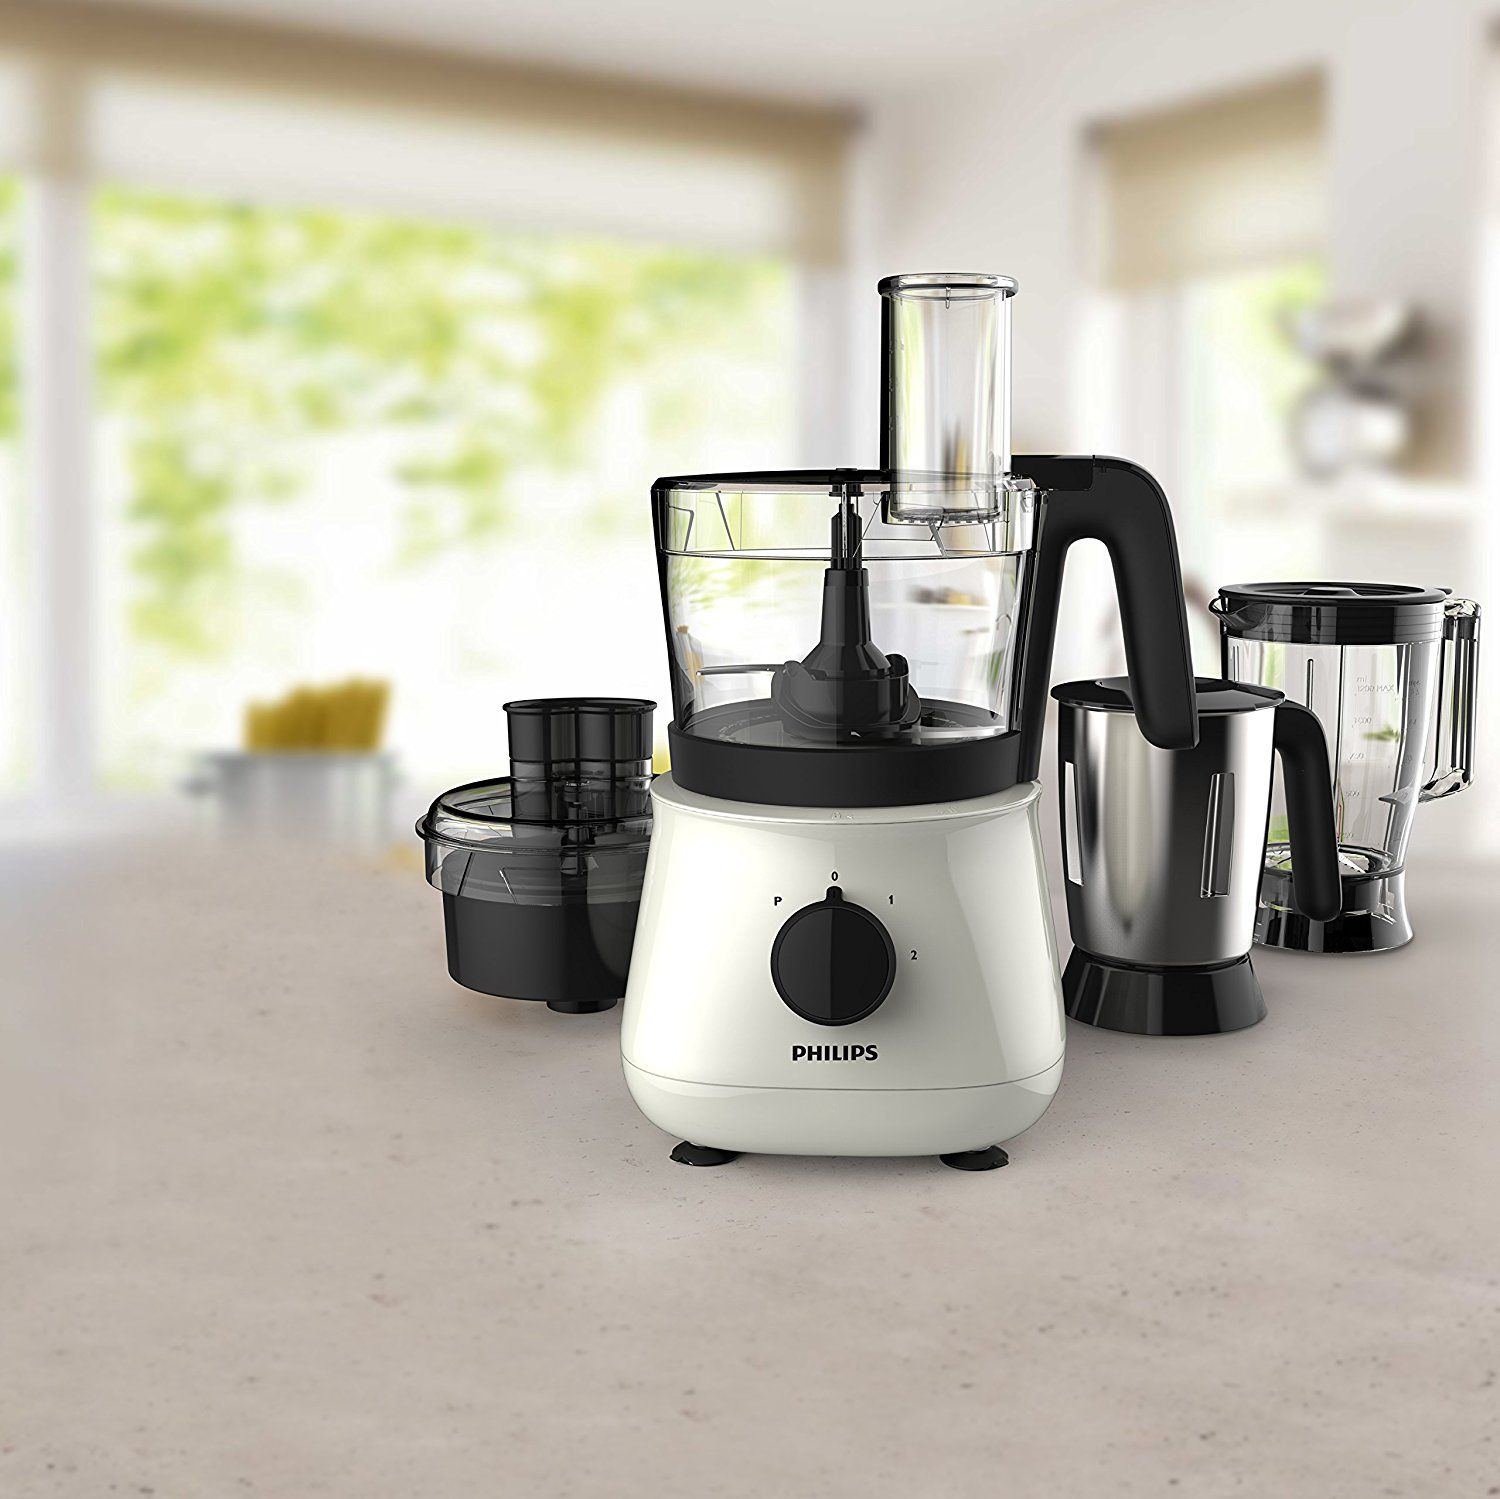 Buy Philips Food Processor HL1660 700W At Rs 7229 Lowest Price ...